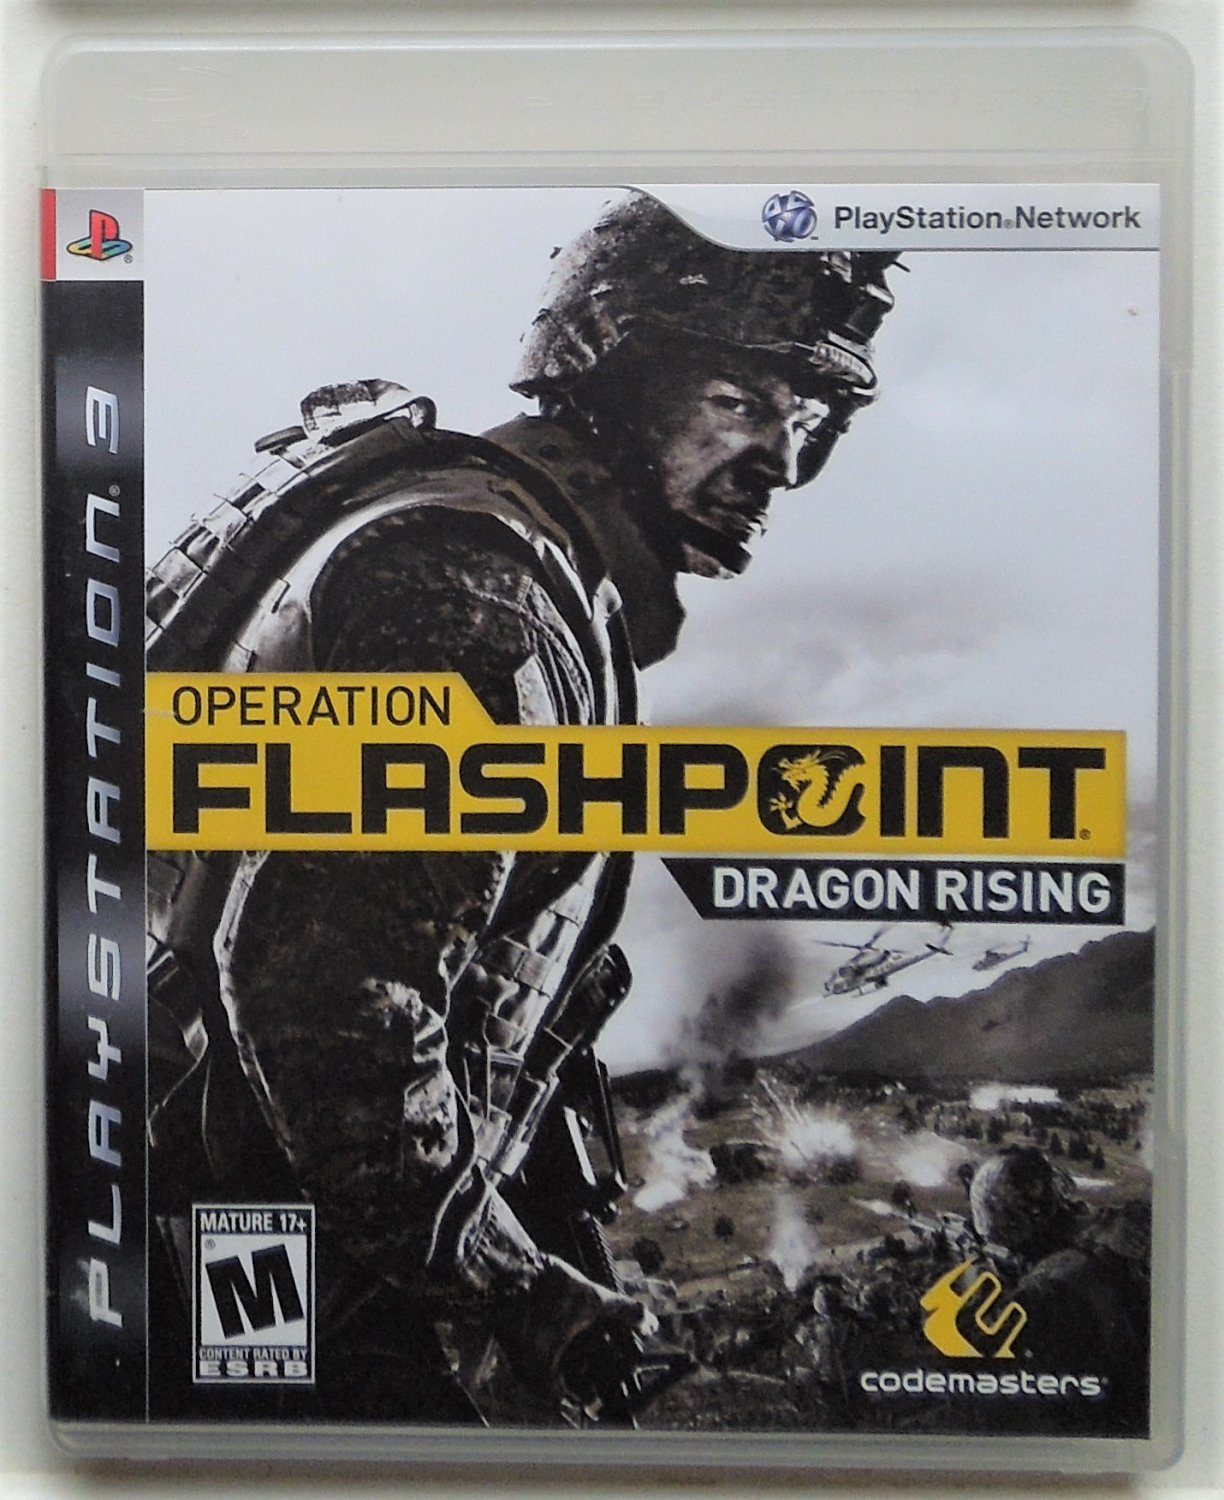 2009 Codemasters Operation Flashpoint Dragon For The PS3 Game System Complete